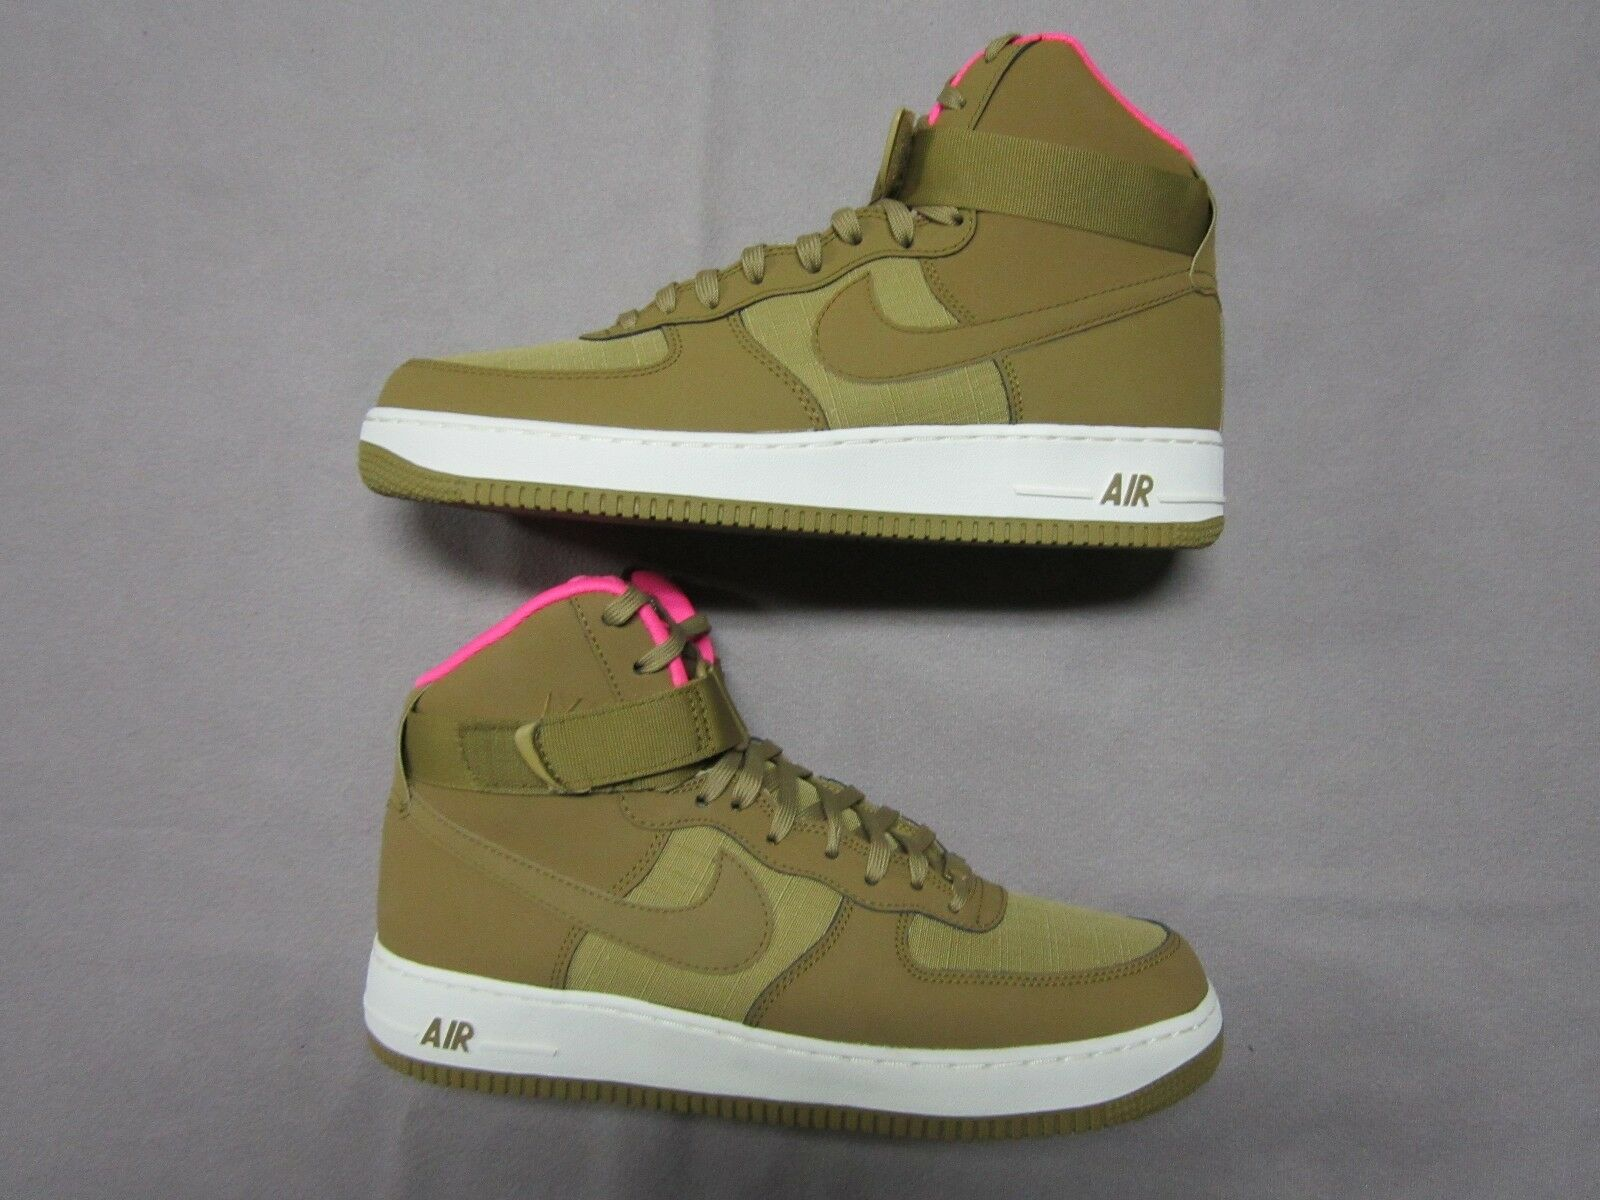 NIKE AIR FORCE 1 PINK '07 GOLDEN TAN WHEAT PINK 1 SNEAKER Chaussures SIZE 11 #315121-204 NEW dc6c3e